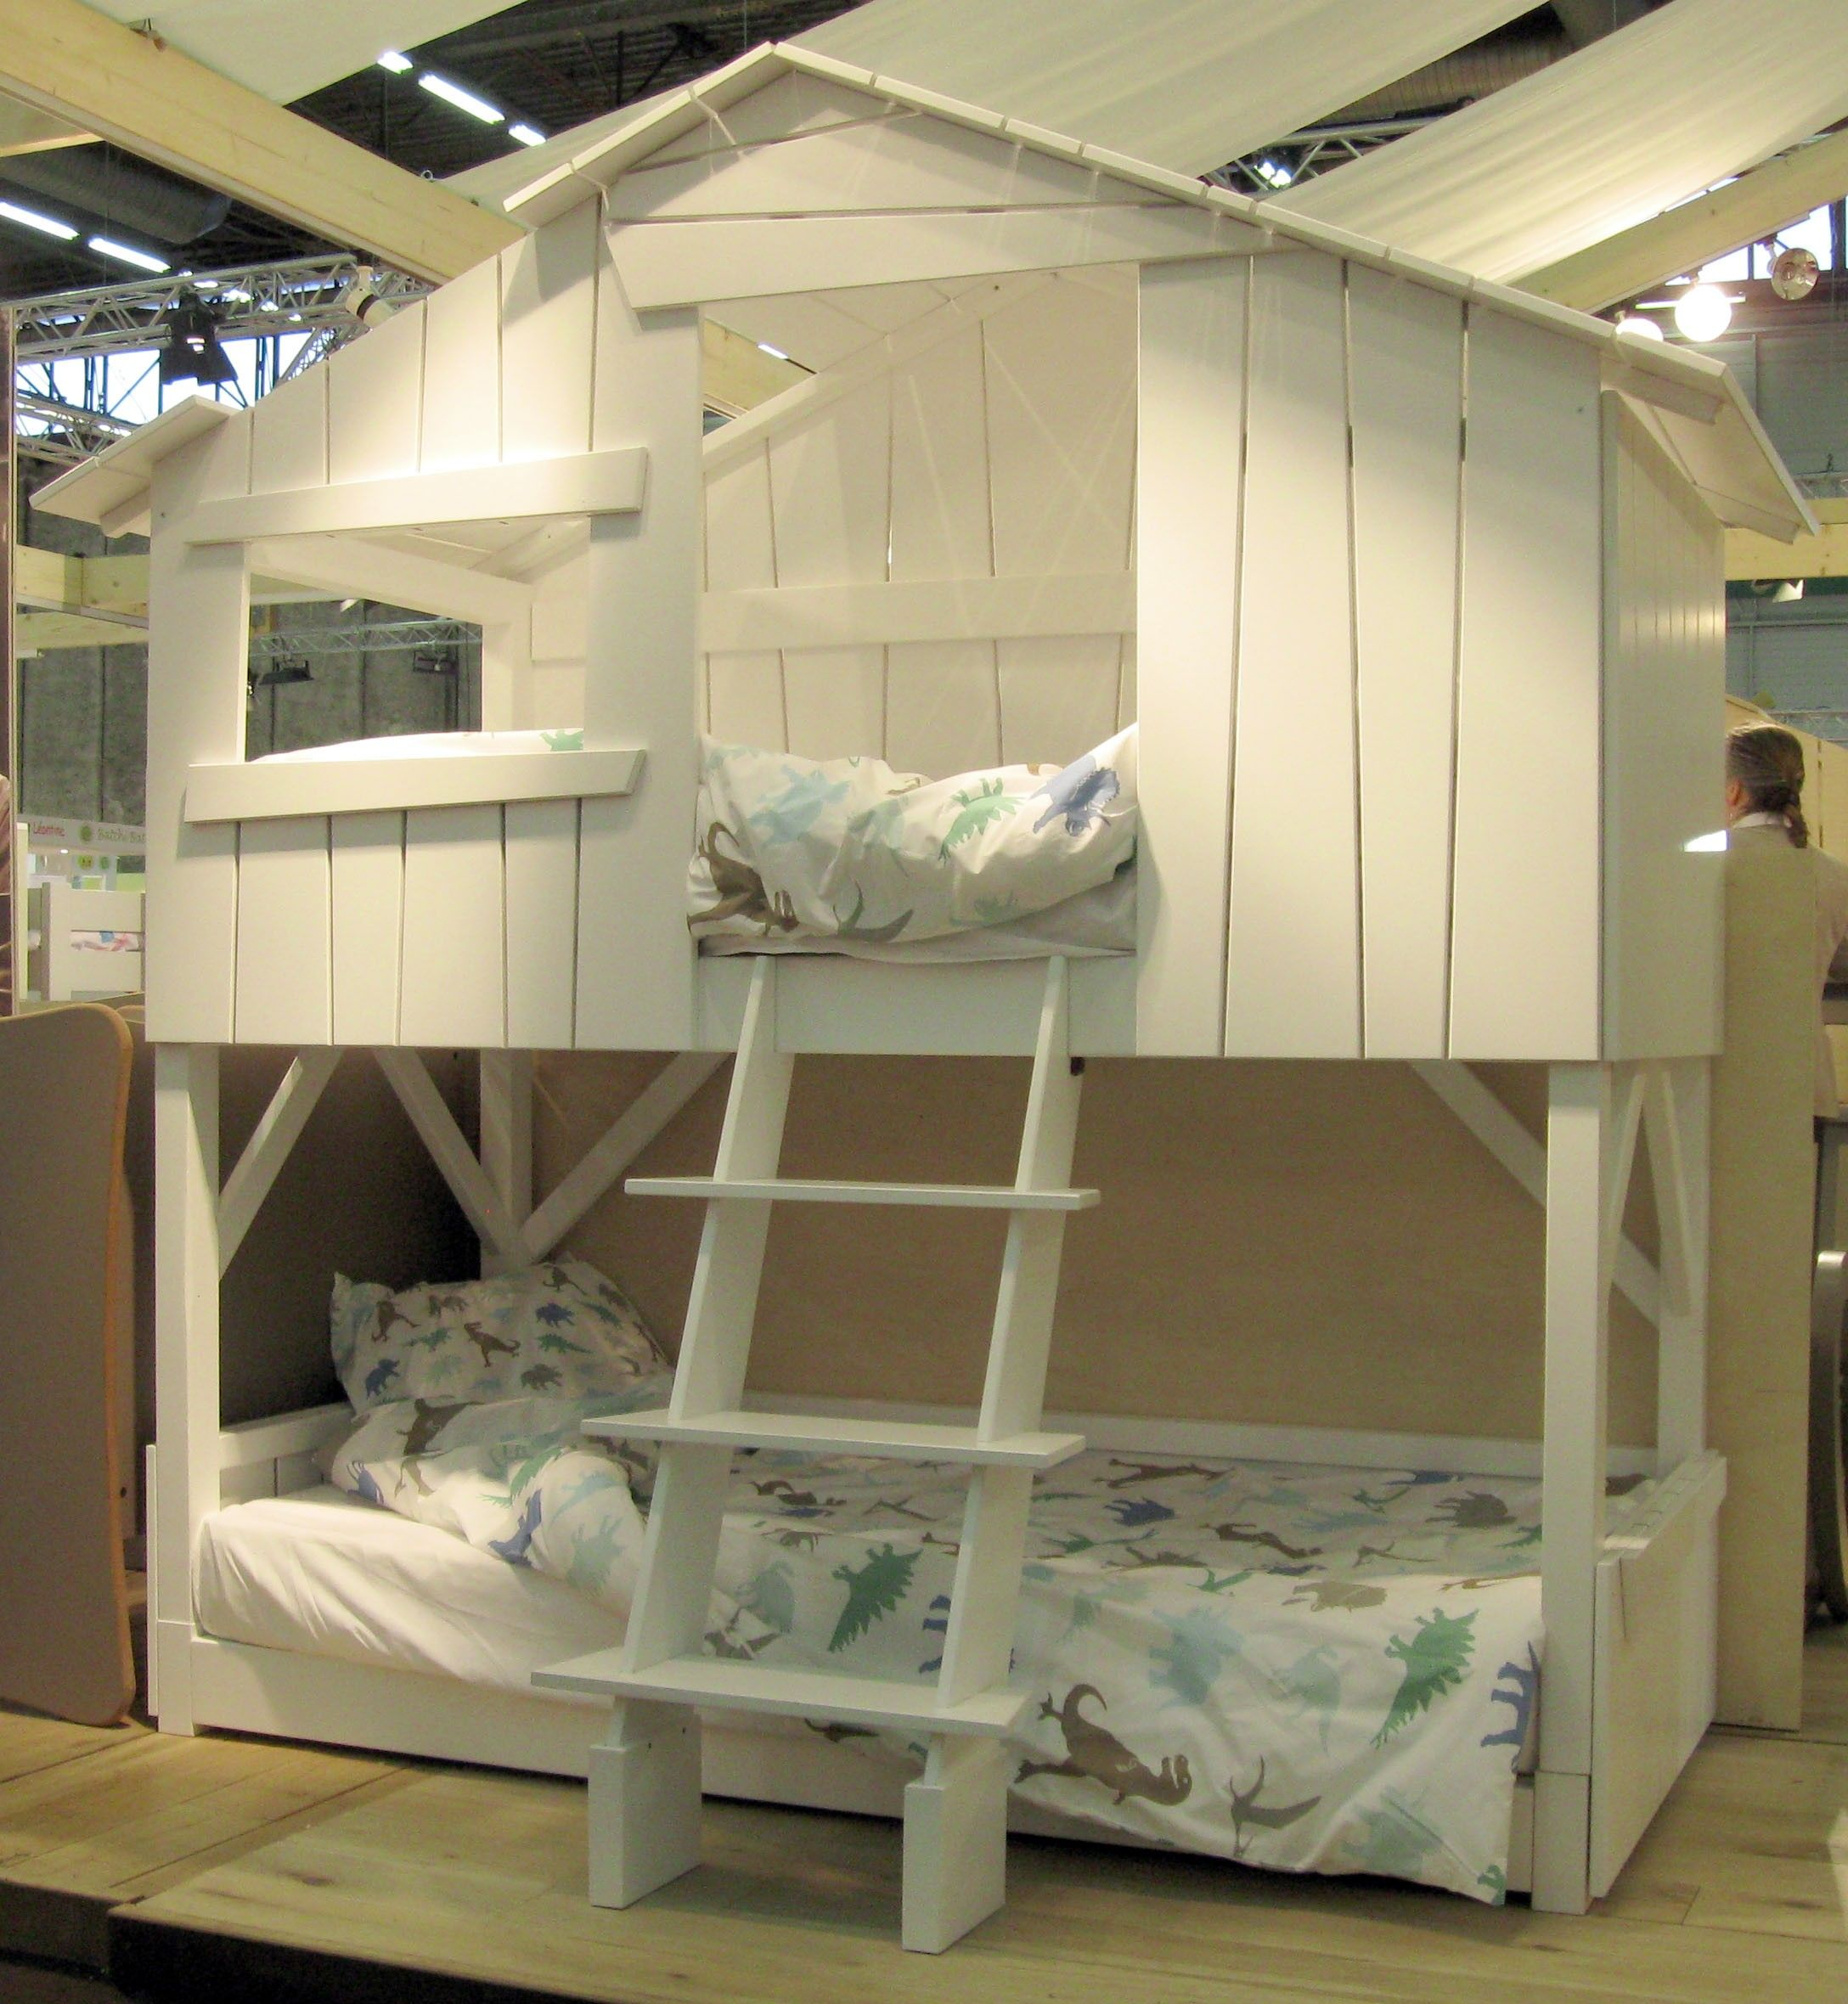 Pin By Bond Tj Bond On Kids Room Creative Beds Awesome Bedrooms Childrens Room Decor